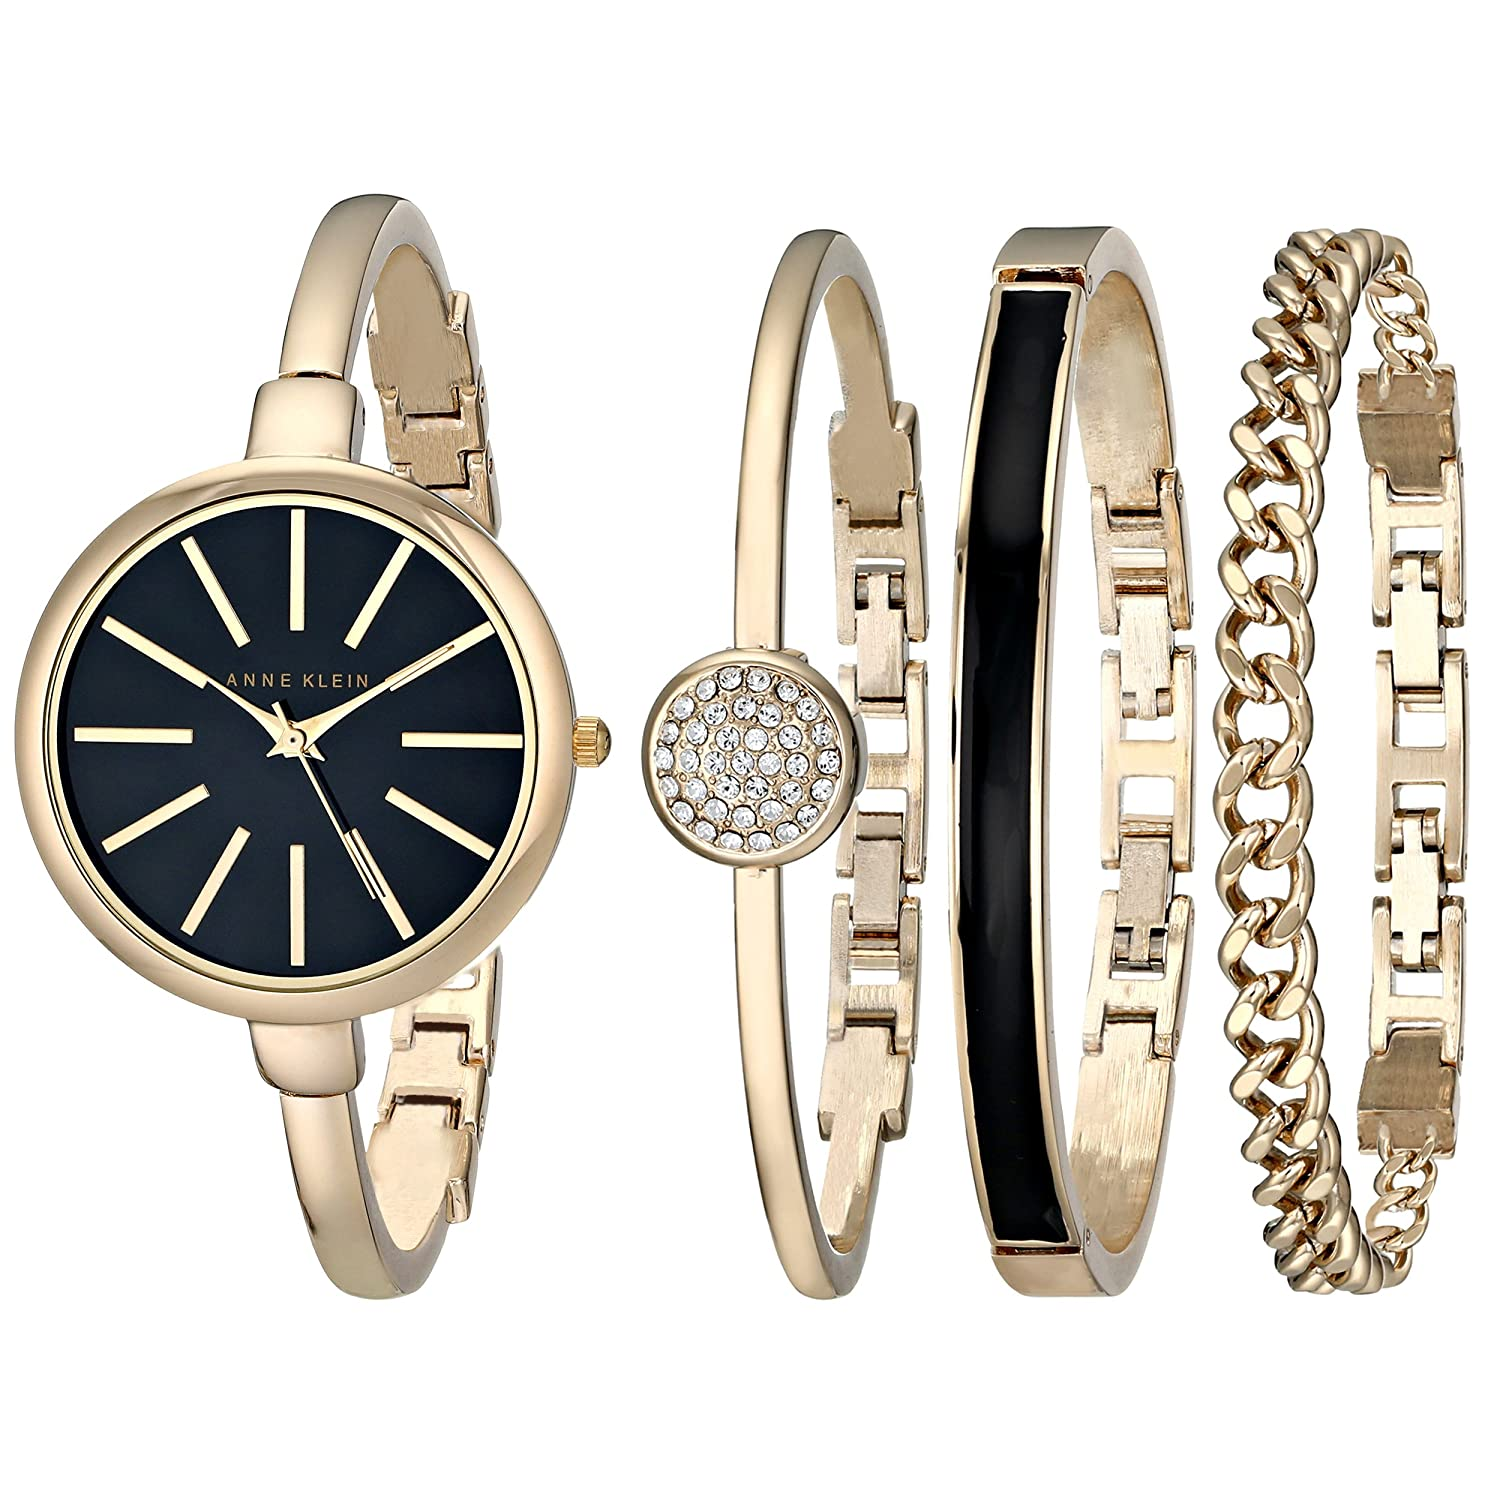 black luxury watches crystal function multi full bangle brand product women steel rhinestone bracelet watch lady dress famous band